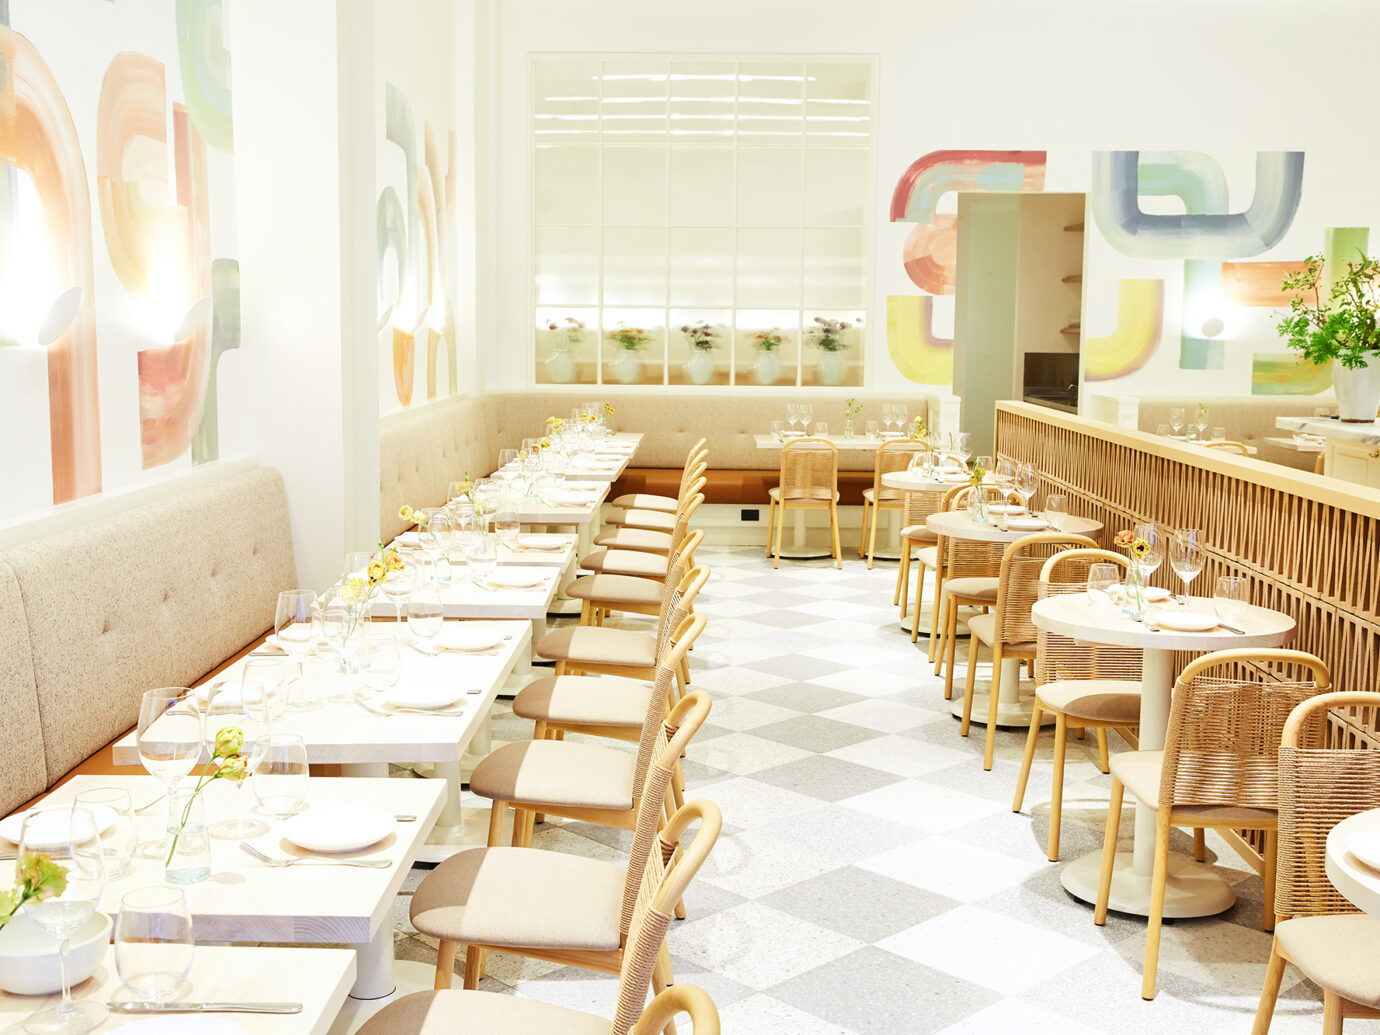 Dining room at Il Florista in NYC